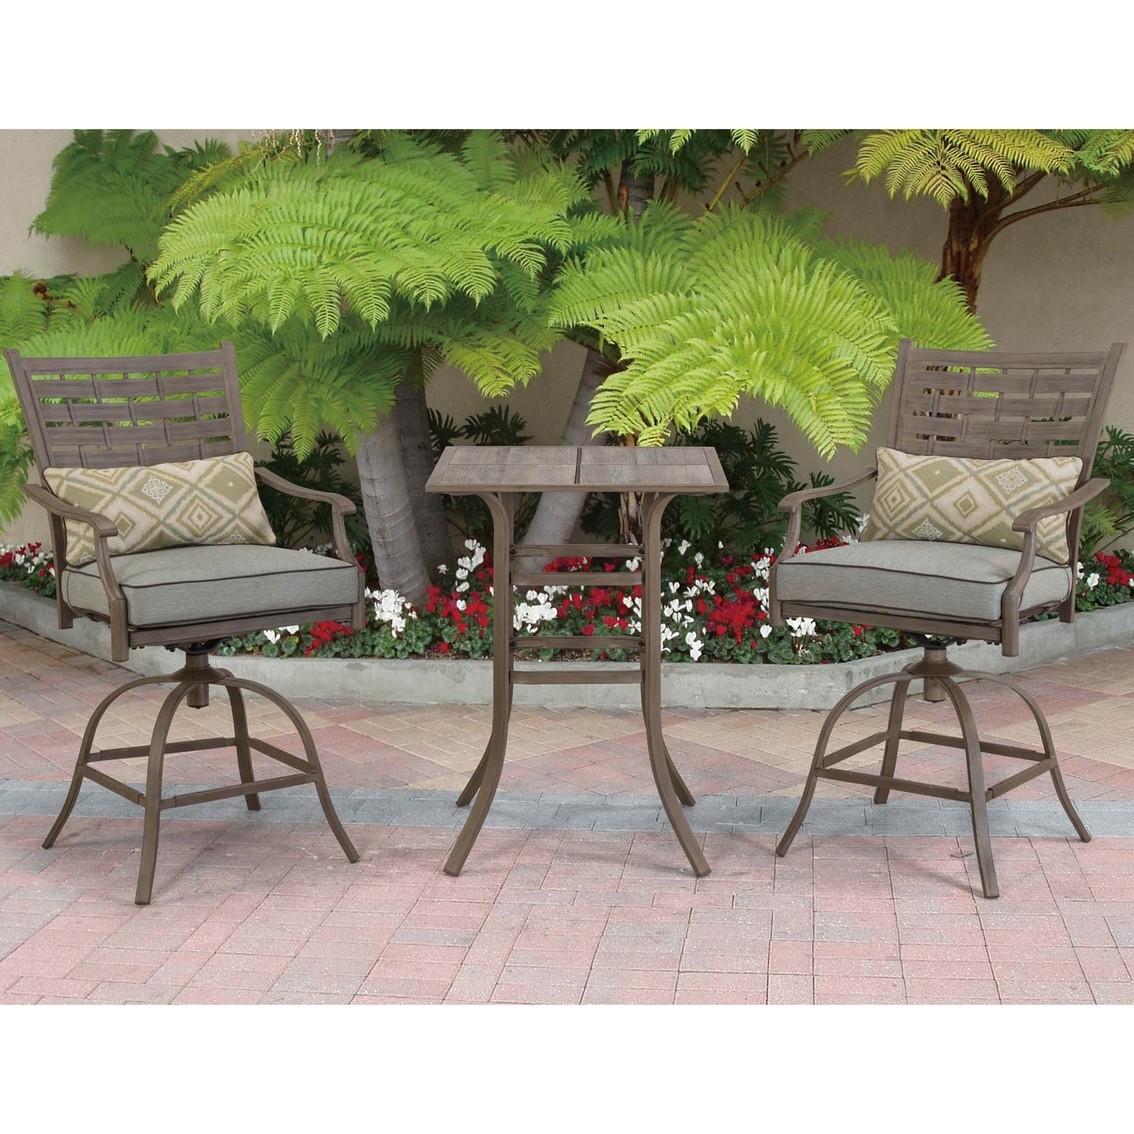 Courtyard Creations Melrosa 3 Pc Stamp Cushion Balcony Set Patio